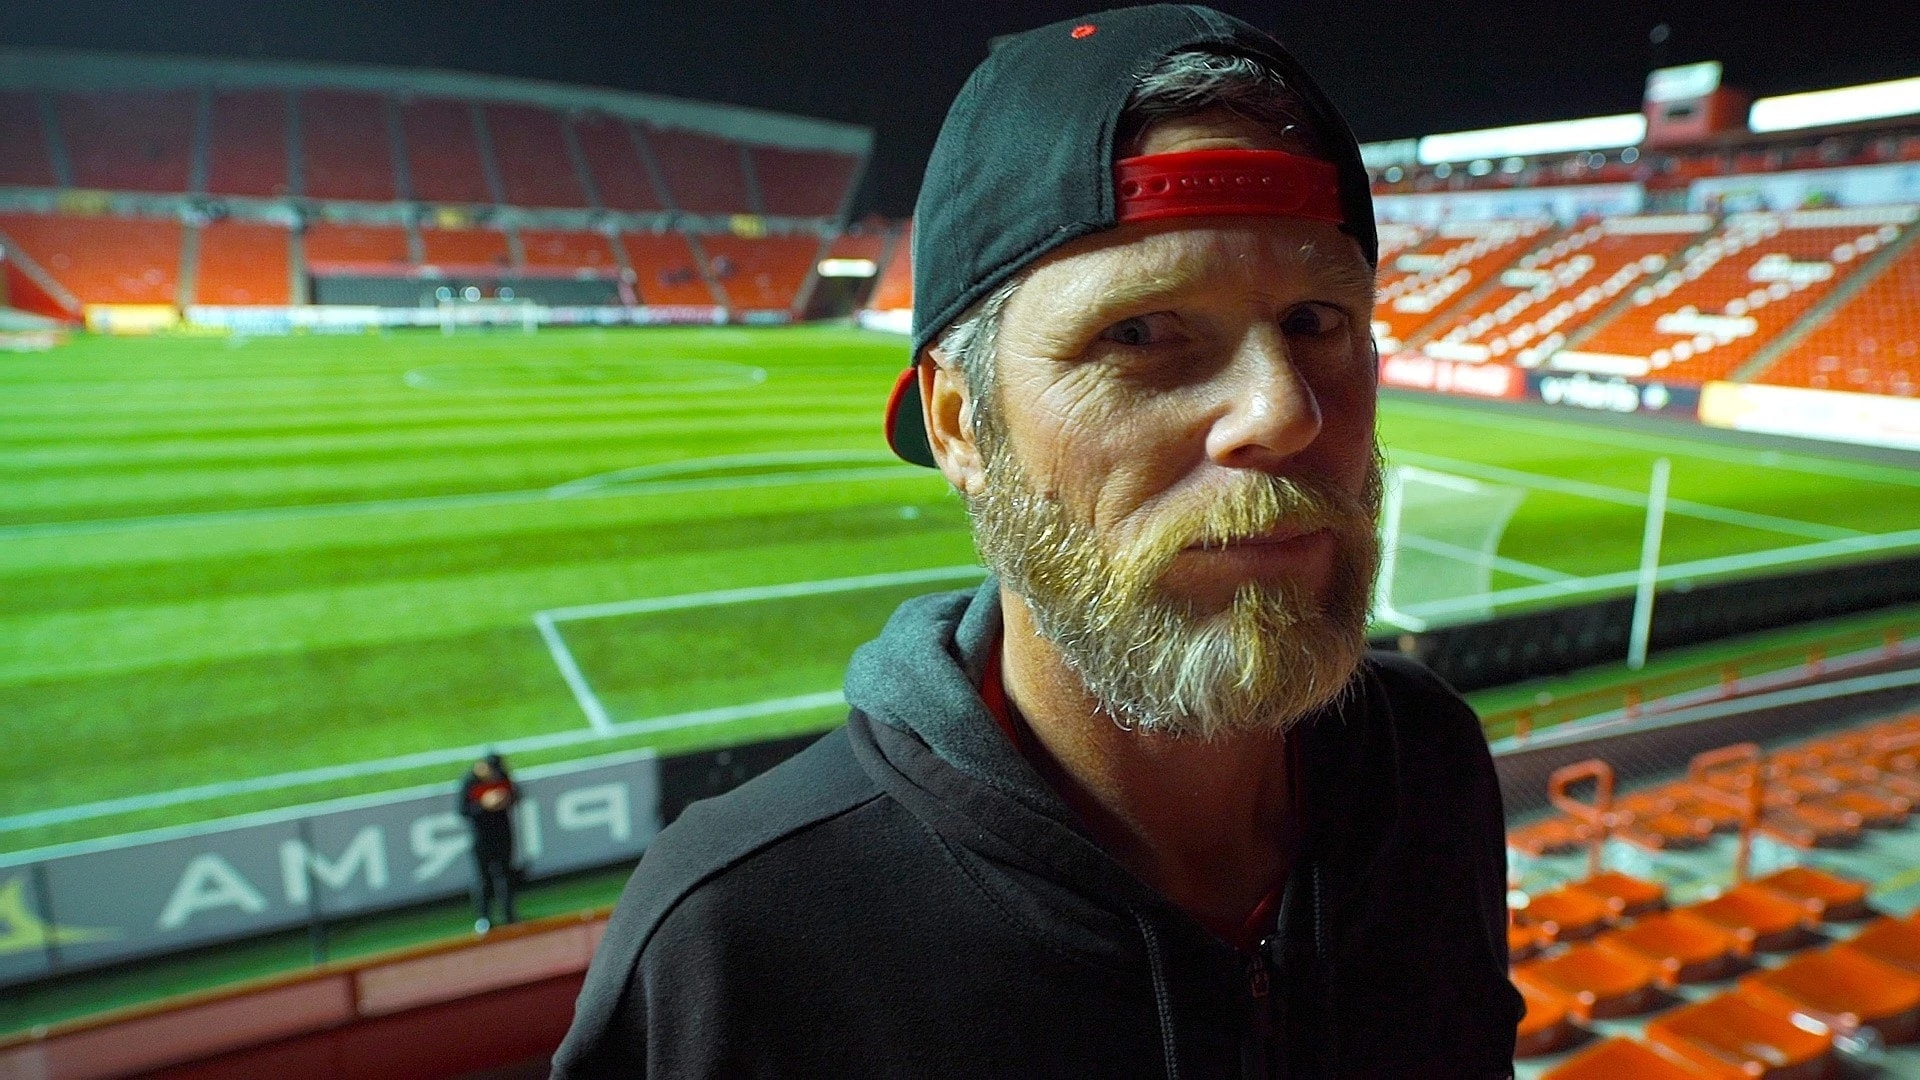 Marty Albert in his native environment, Estadio Caliente in Tijuana.